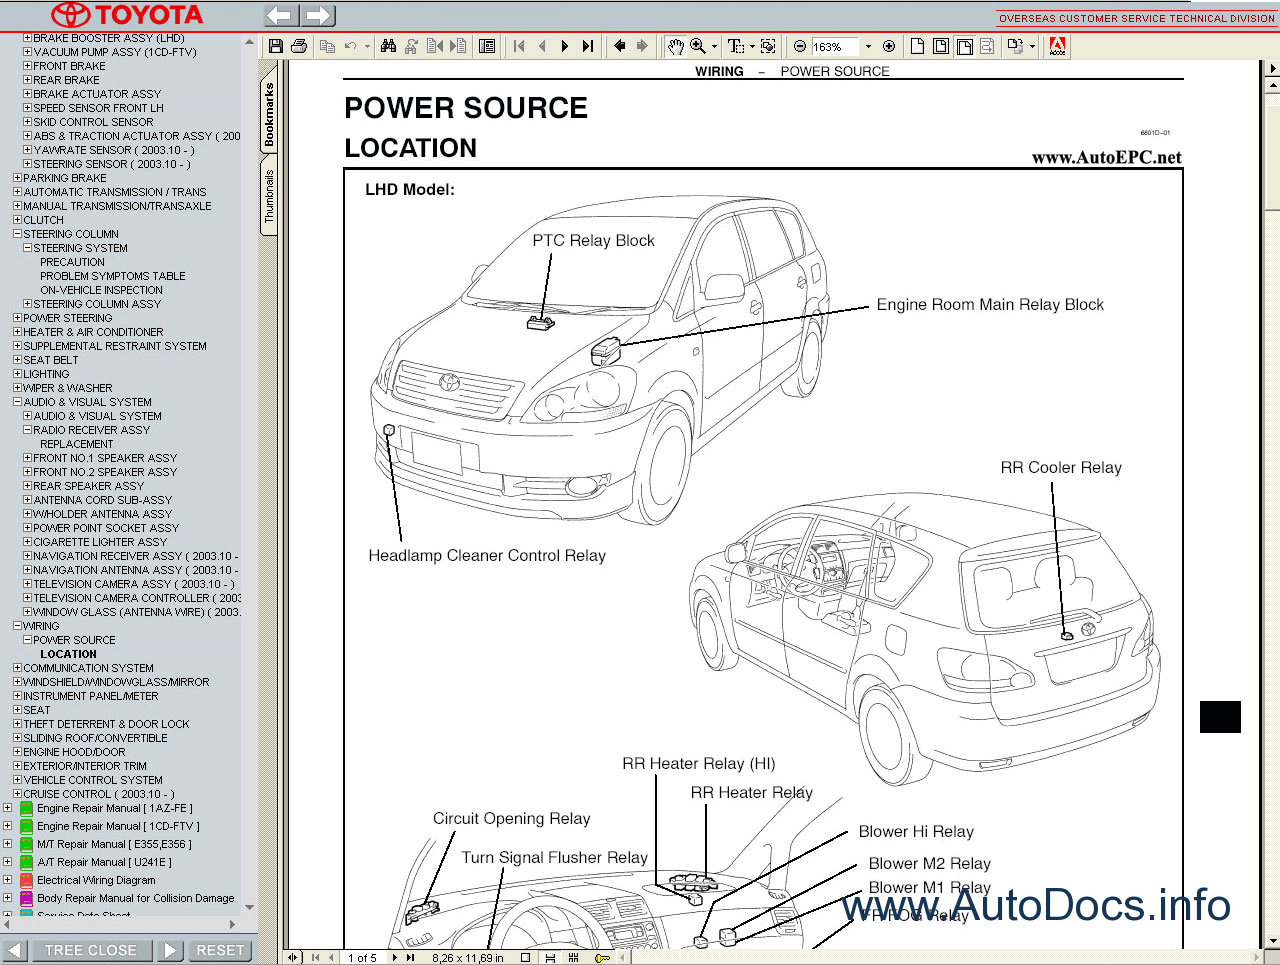 toyota electrical wiring diagram also yaris 2003 toyota